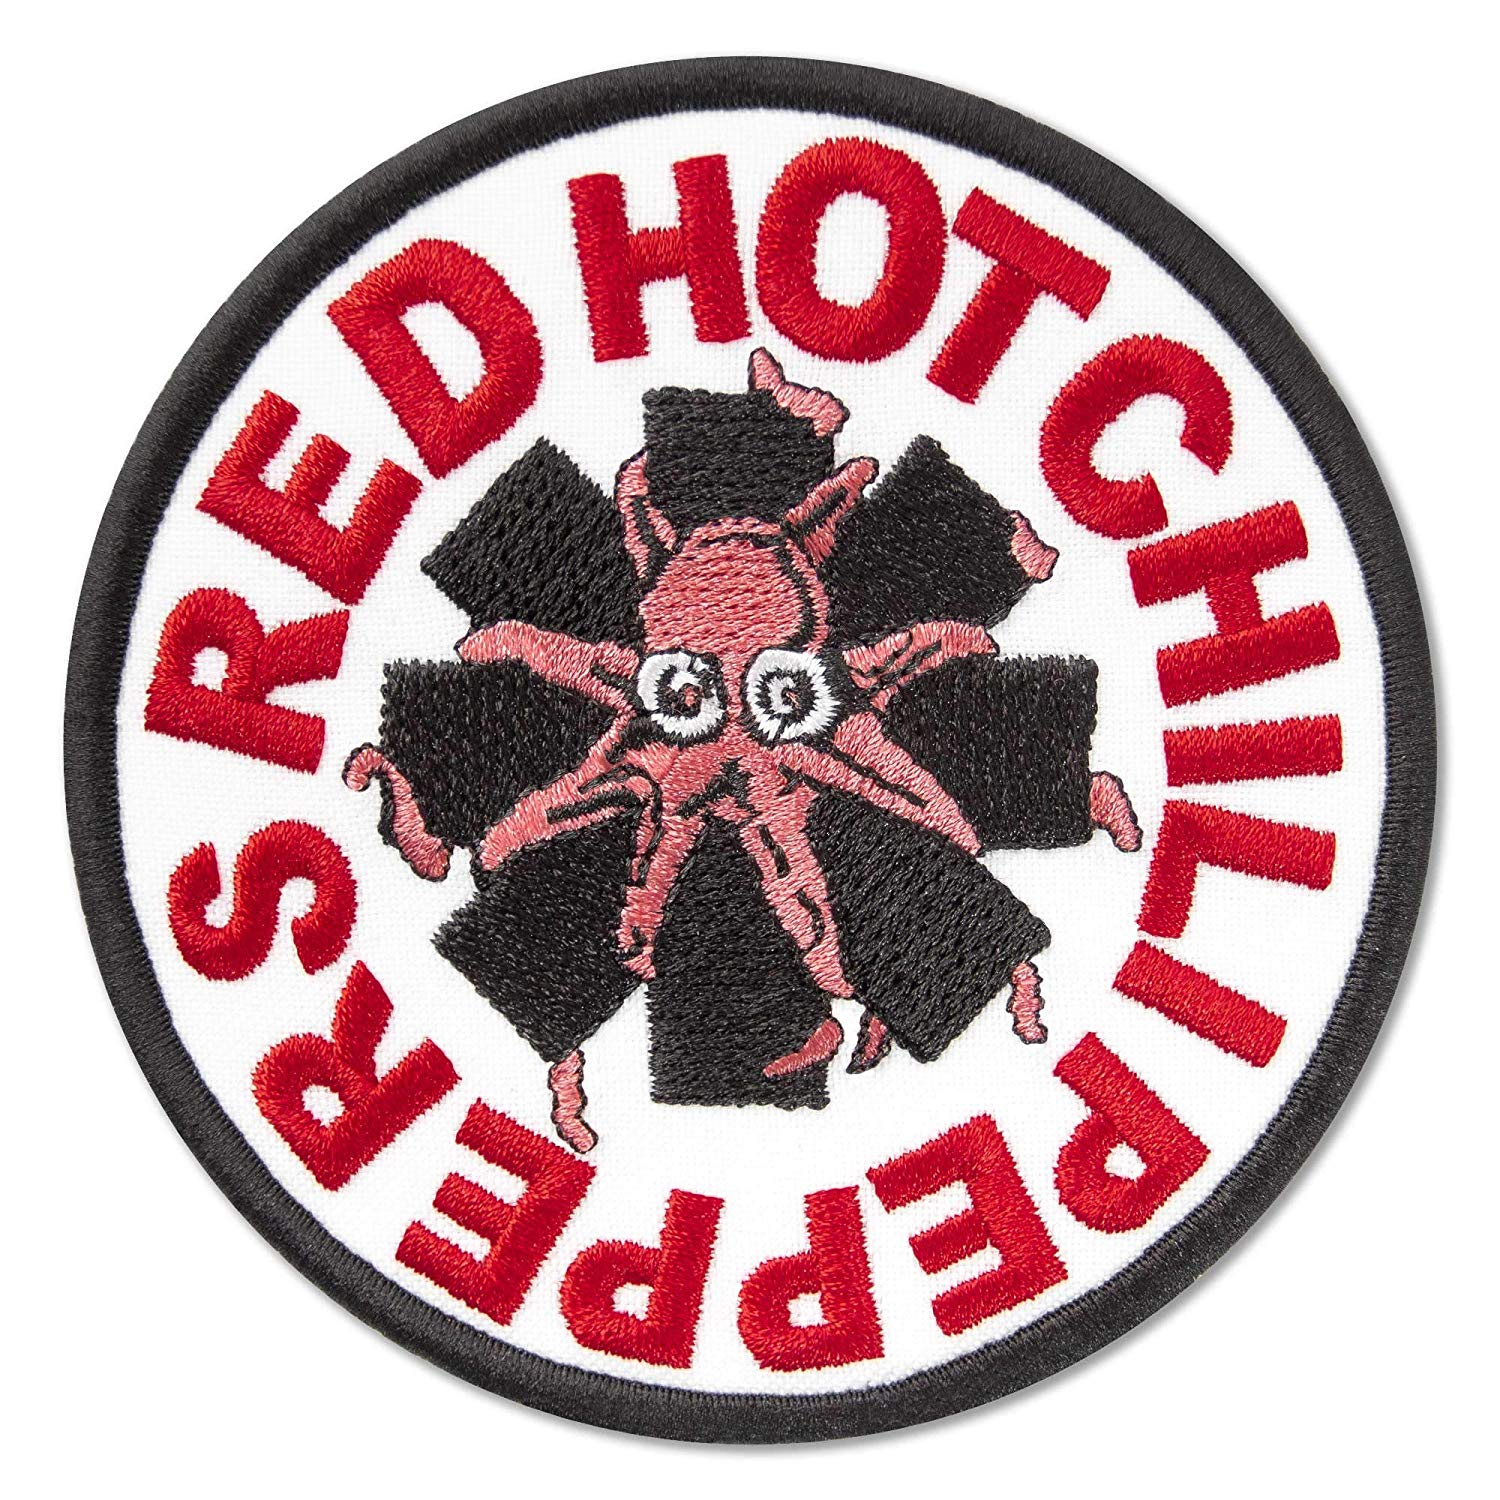 Red Hot Chili Peppers Logo with Octopus Music Rock Band Embroidered Patch  Iron On (3.7\